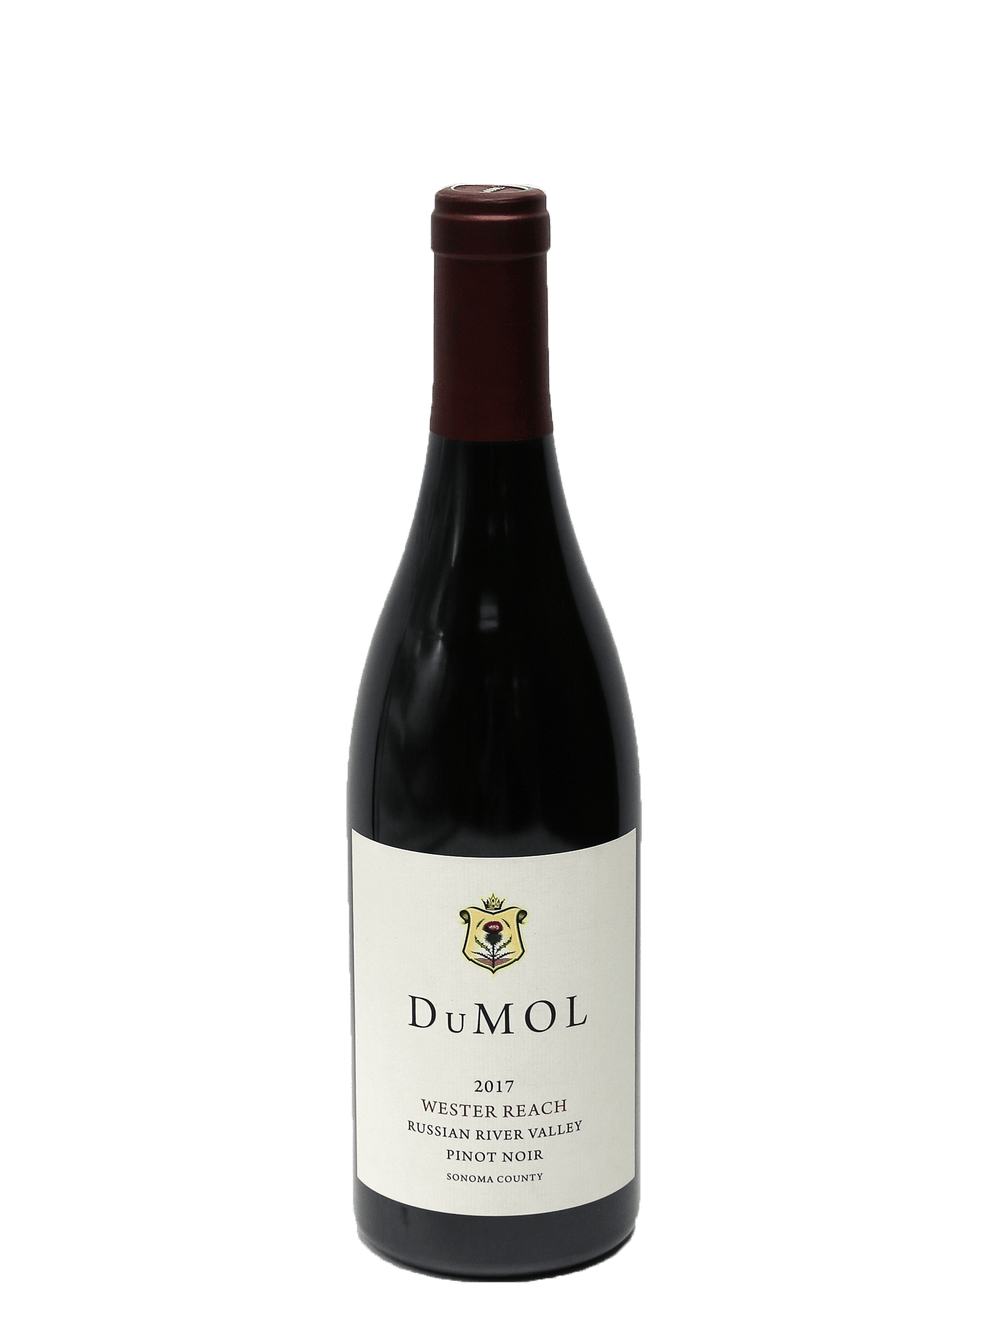 2017 DuMol Pinot Noir Wester Reach Russian River Valley